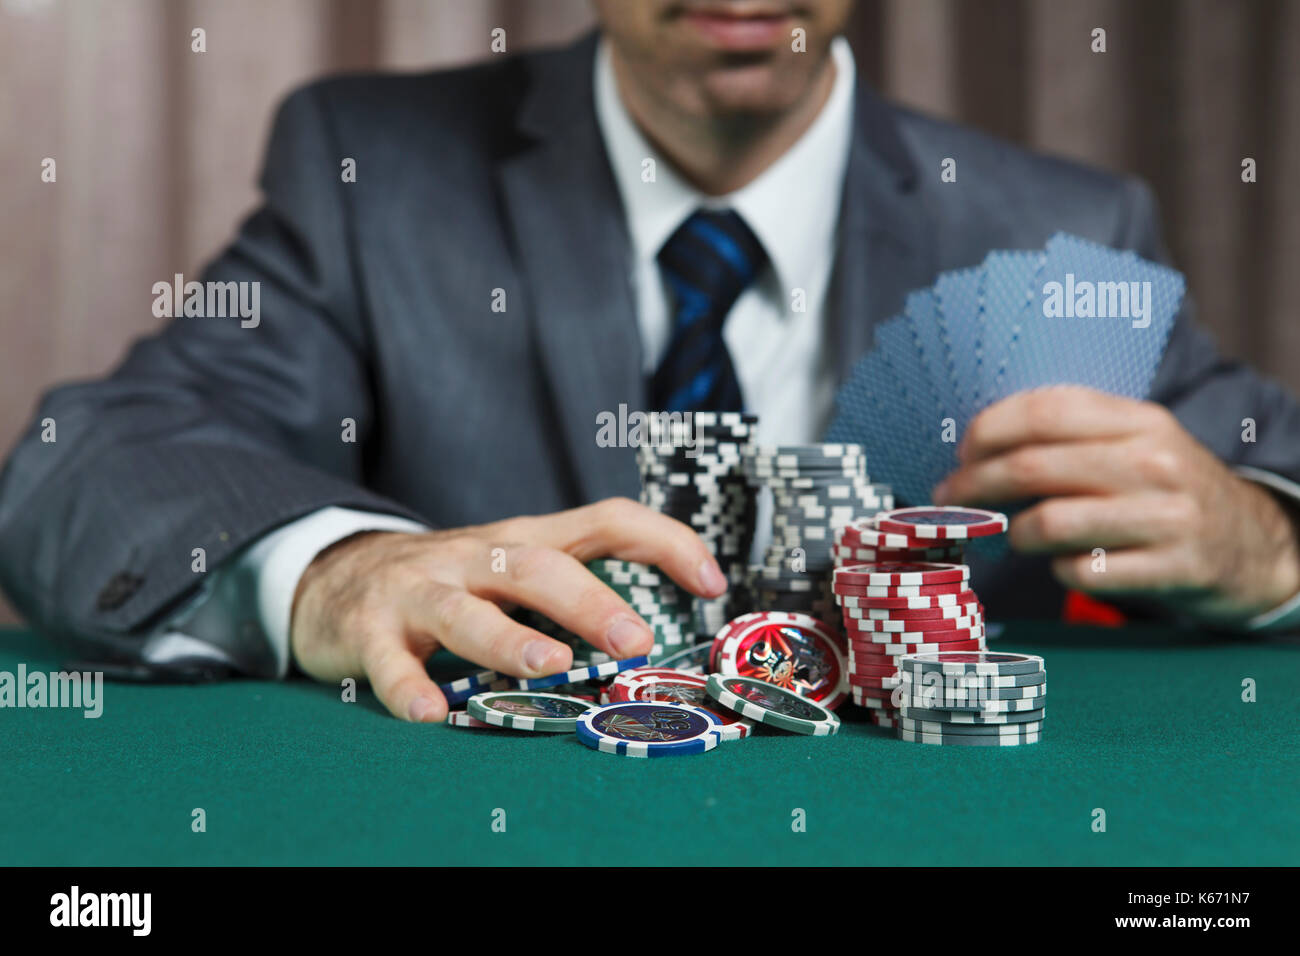 Blackjack Winner,A Solid Businessman, Won In Blackjack Game And - Stock Image